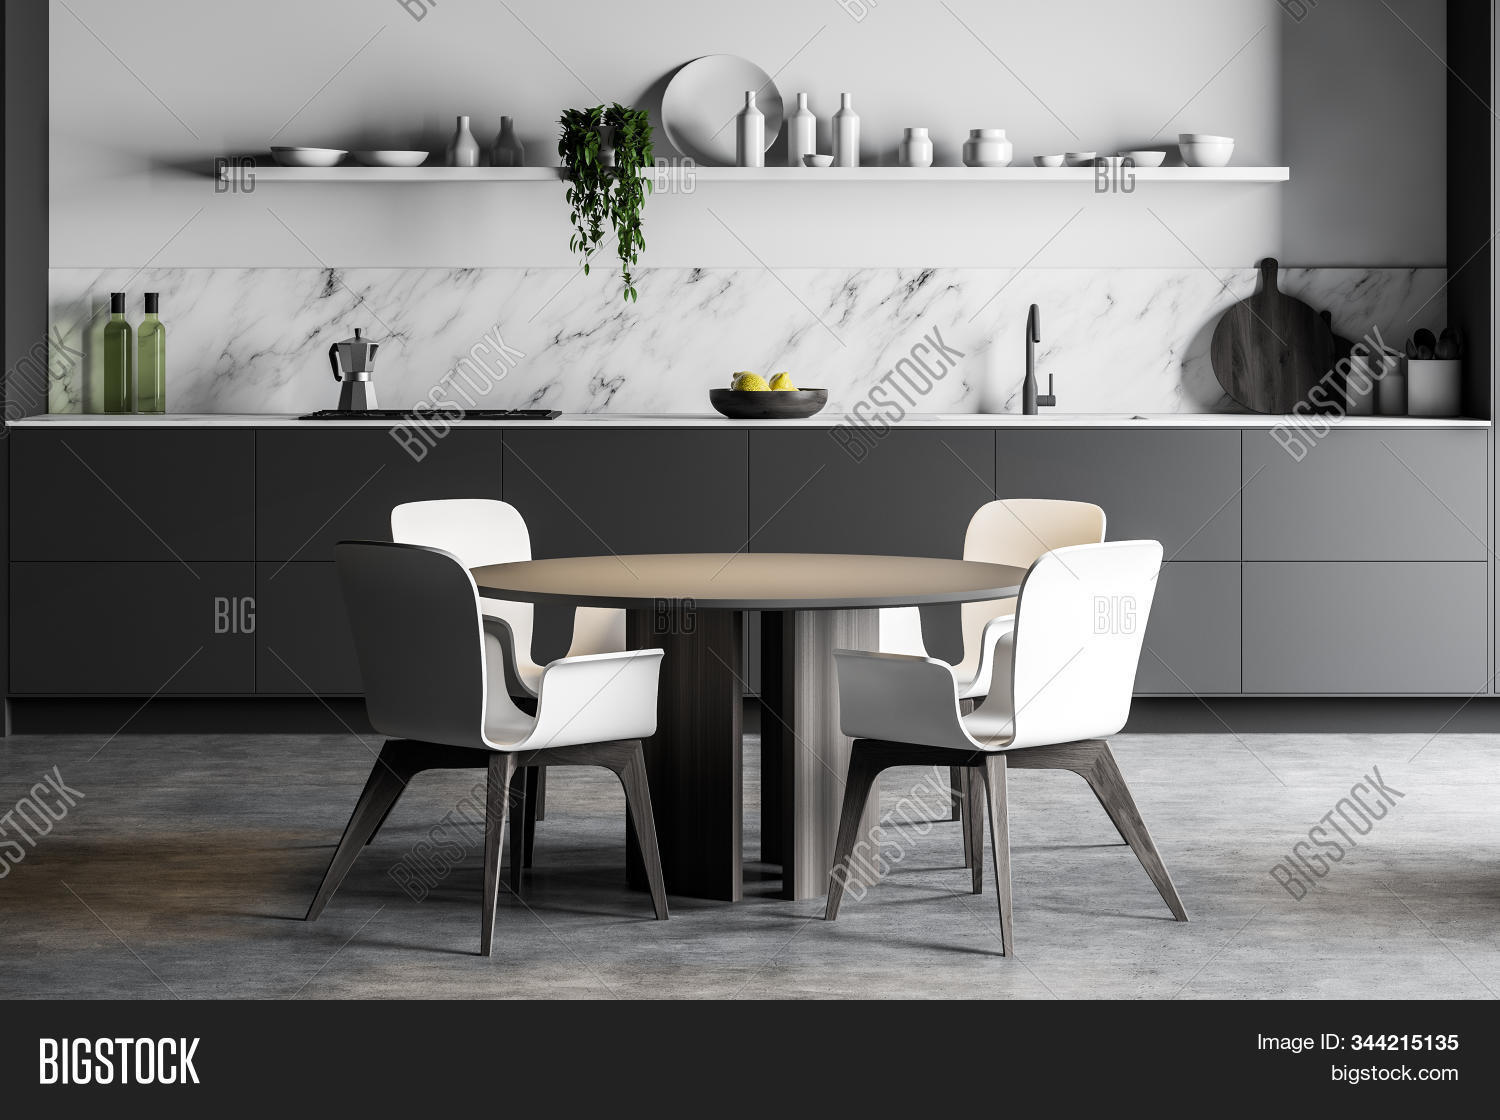 Round Dining Table Image Photo Free Trial Bigstock